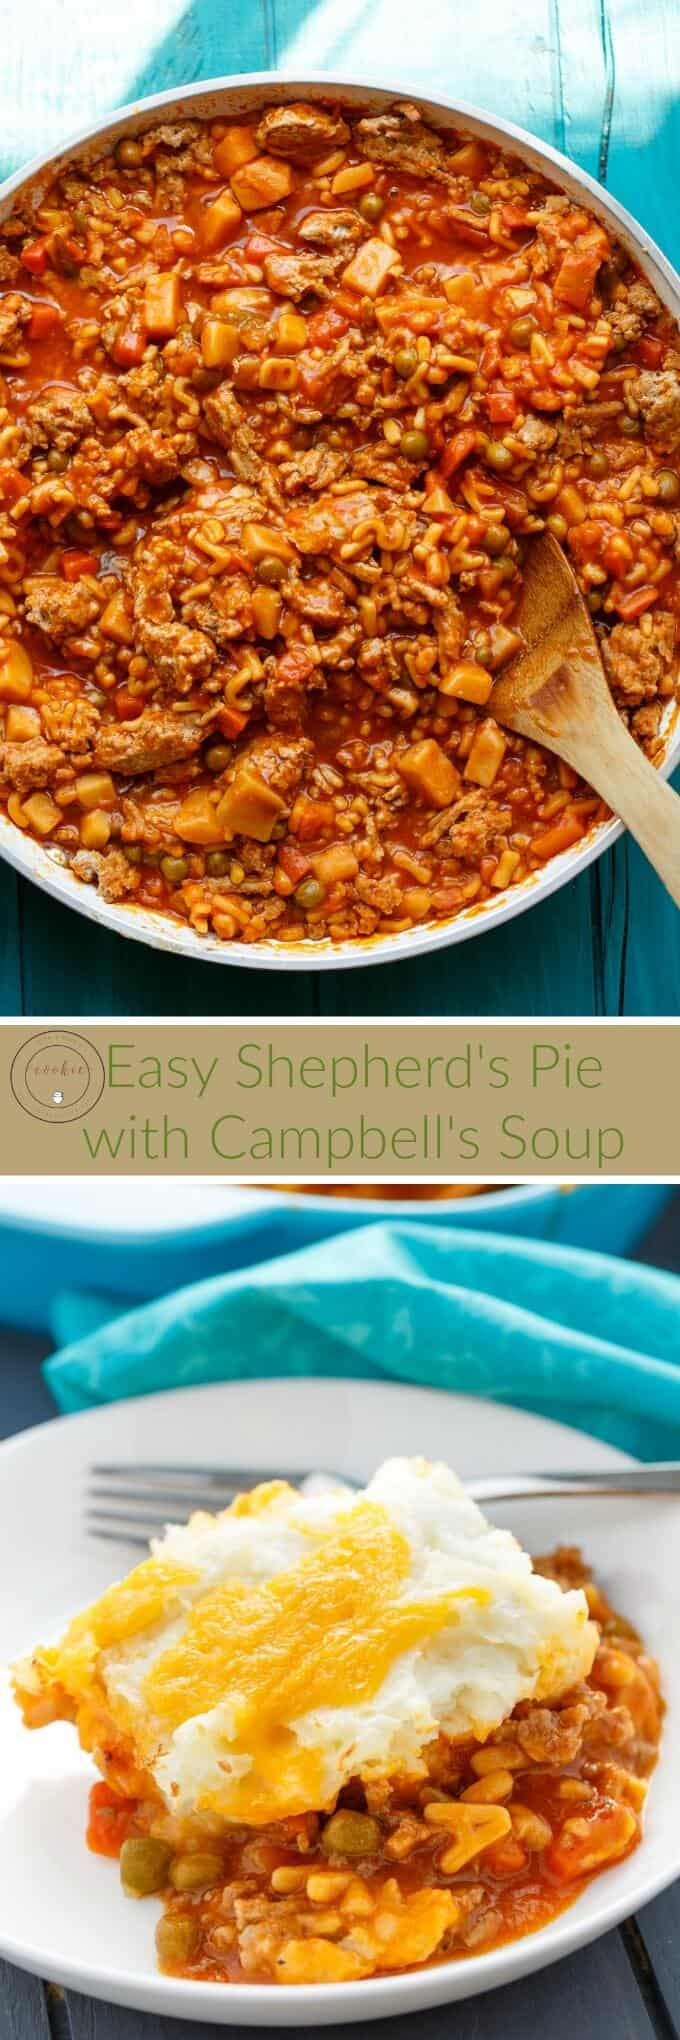 easy-shepherds-pie-with-campbells-soup